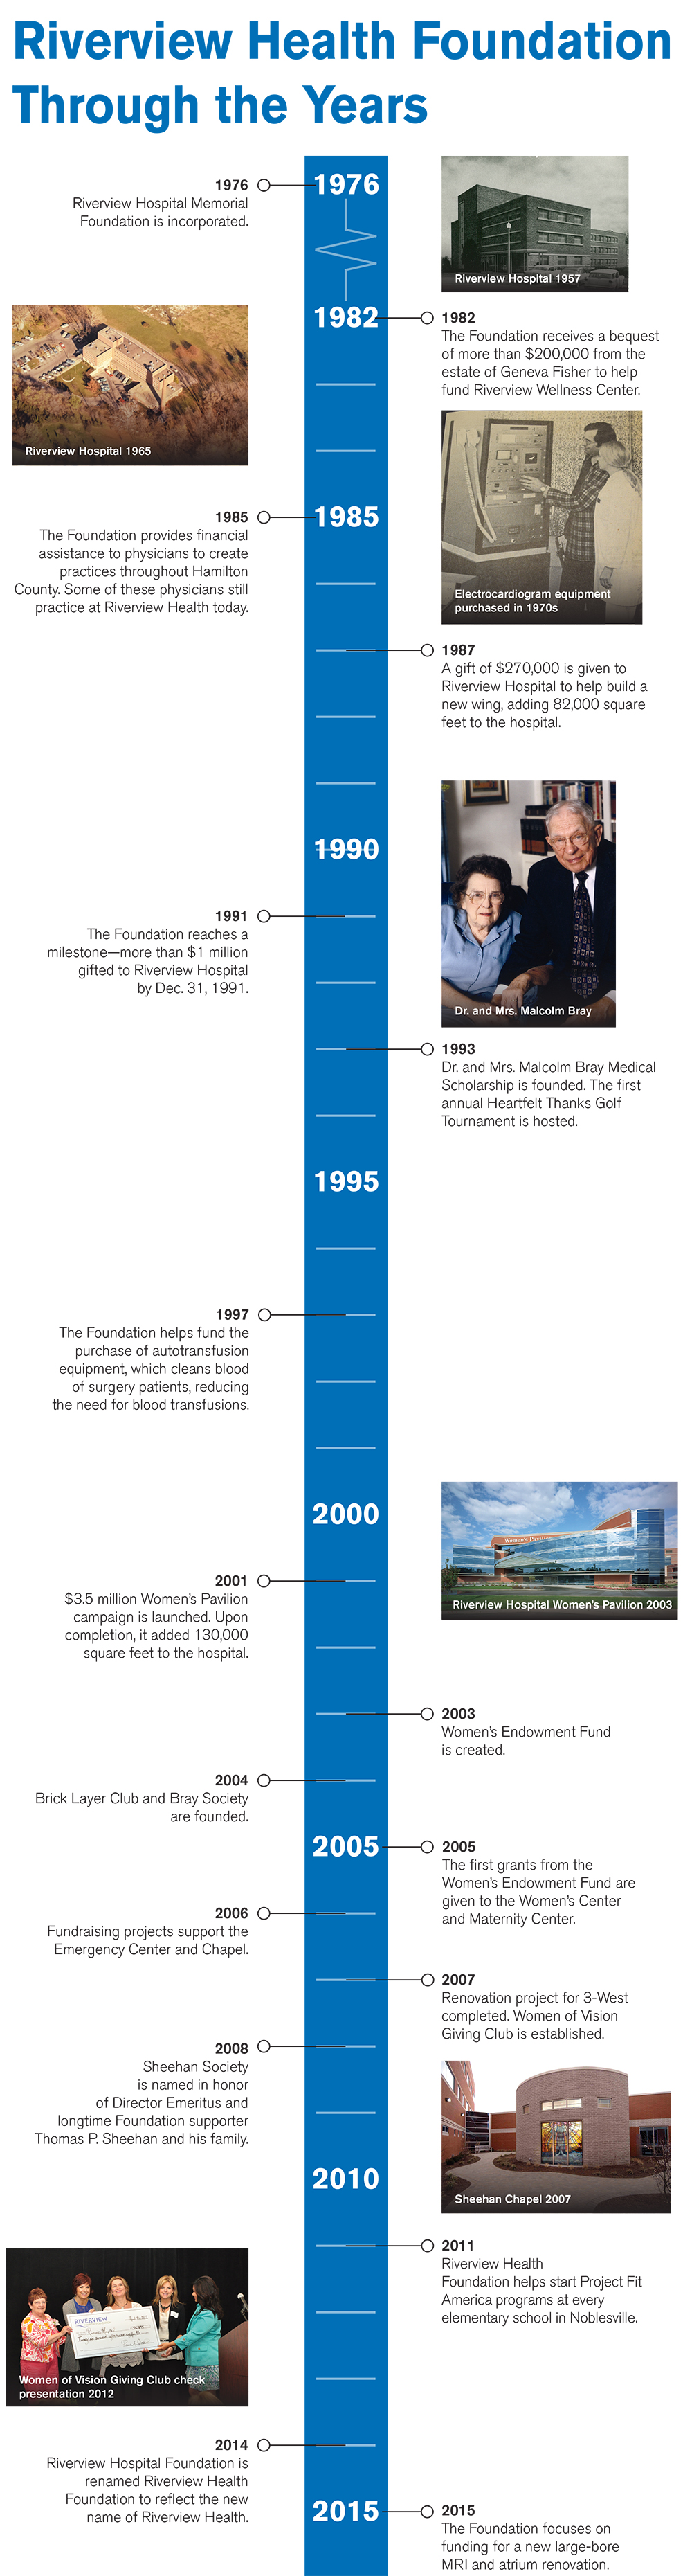 Click to view a timeline of Riverview Health Foundation.